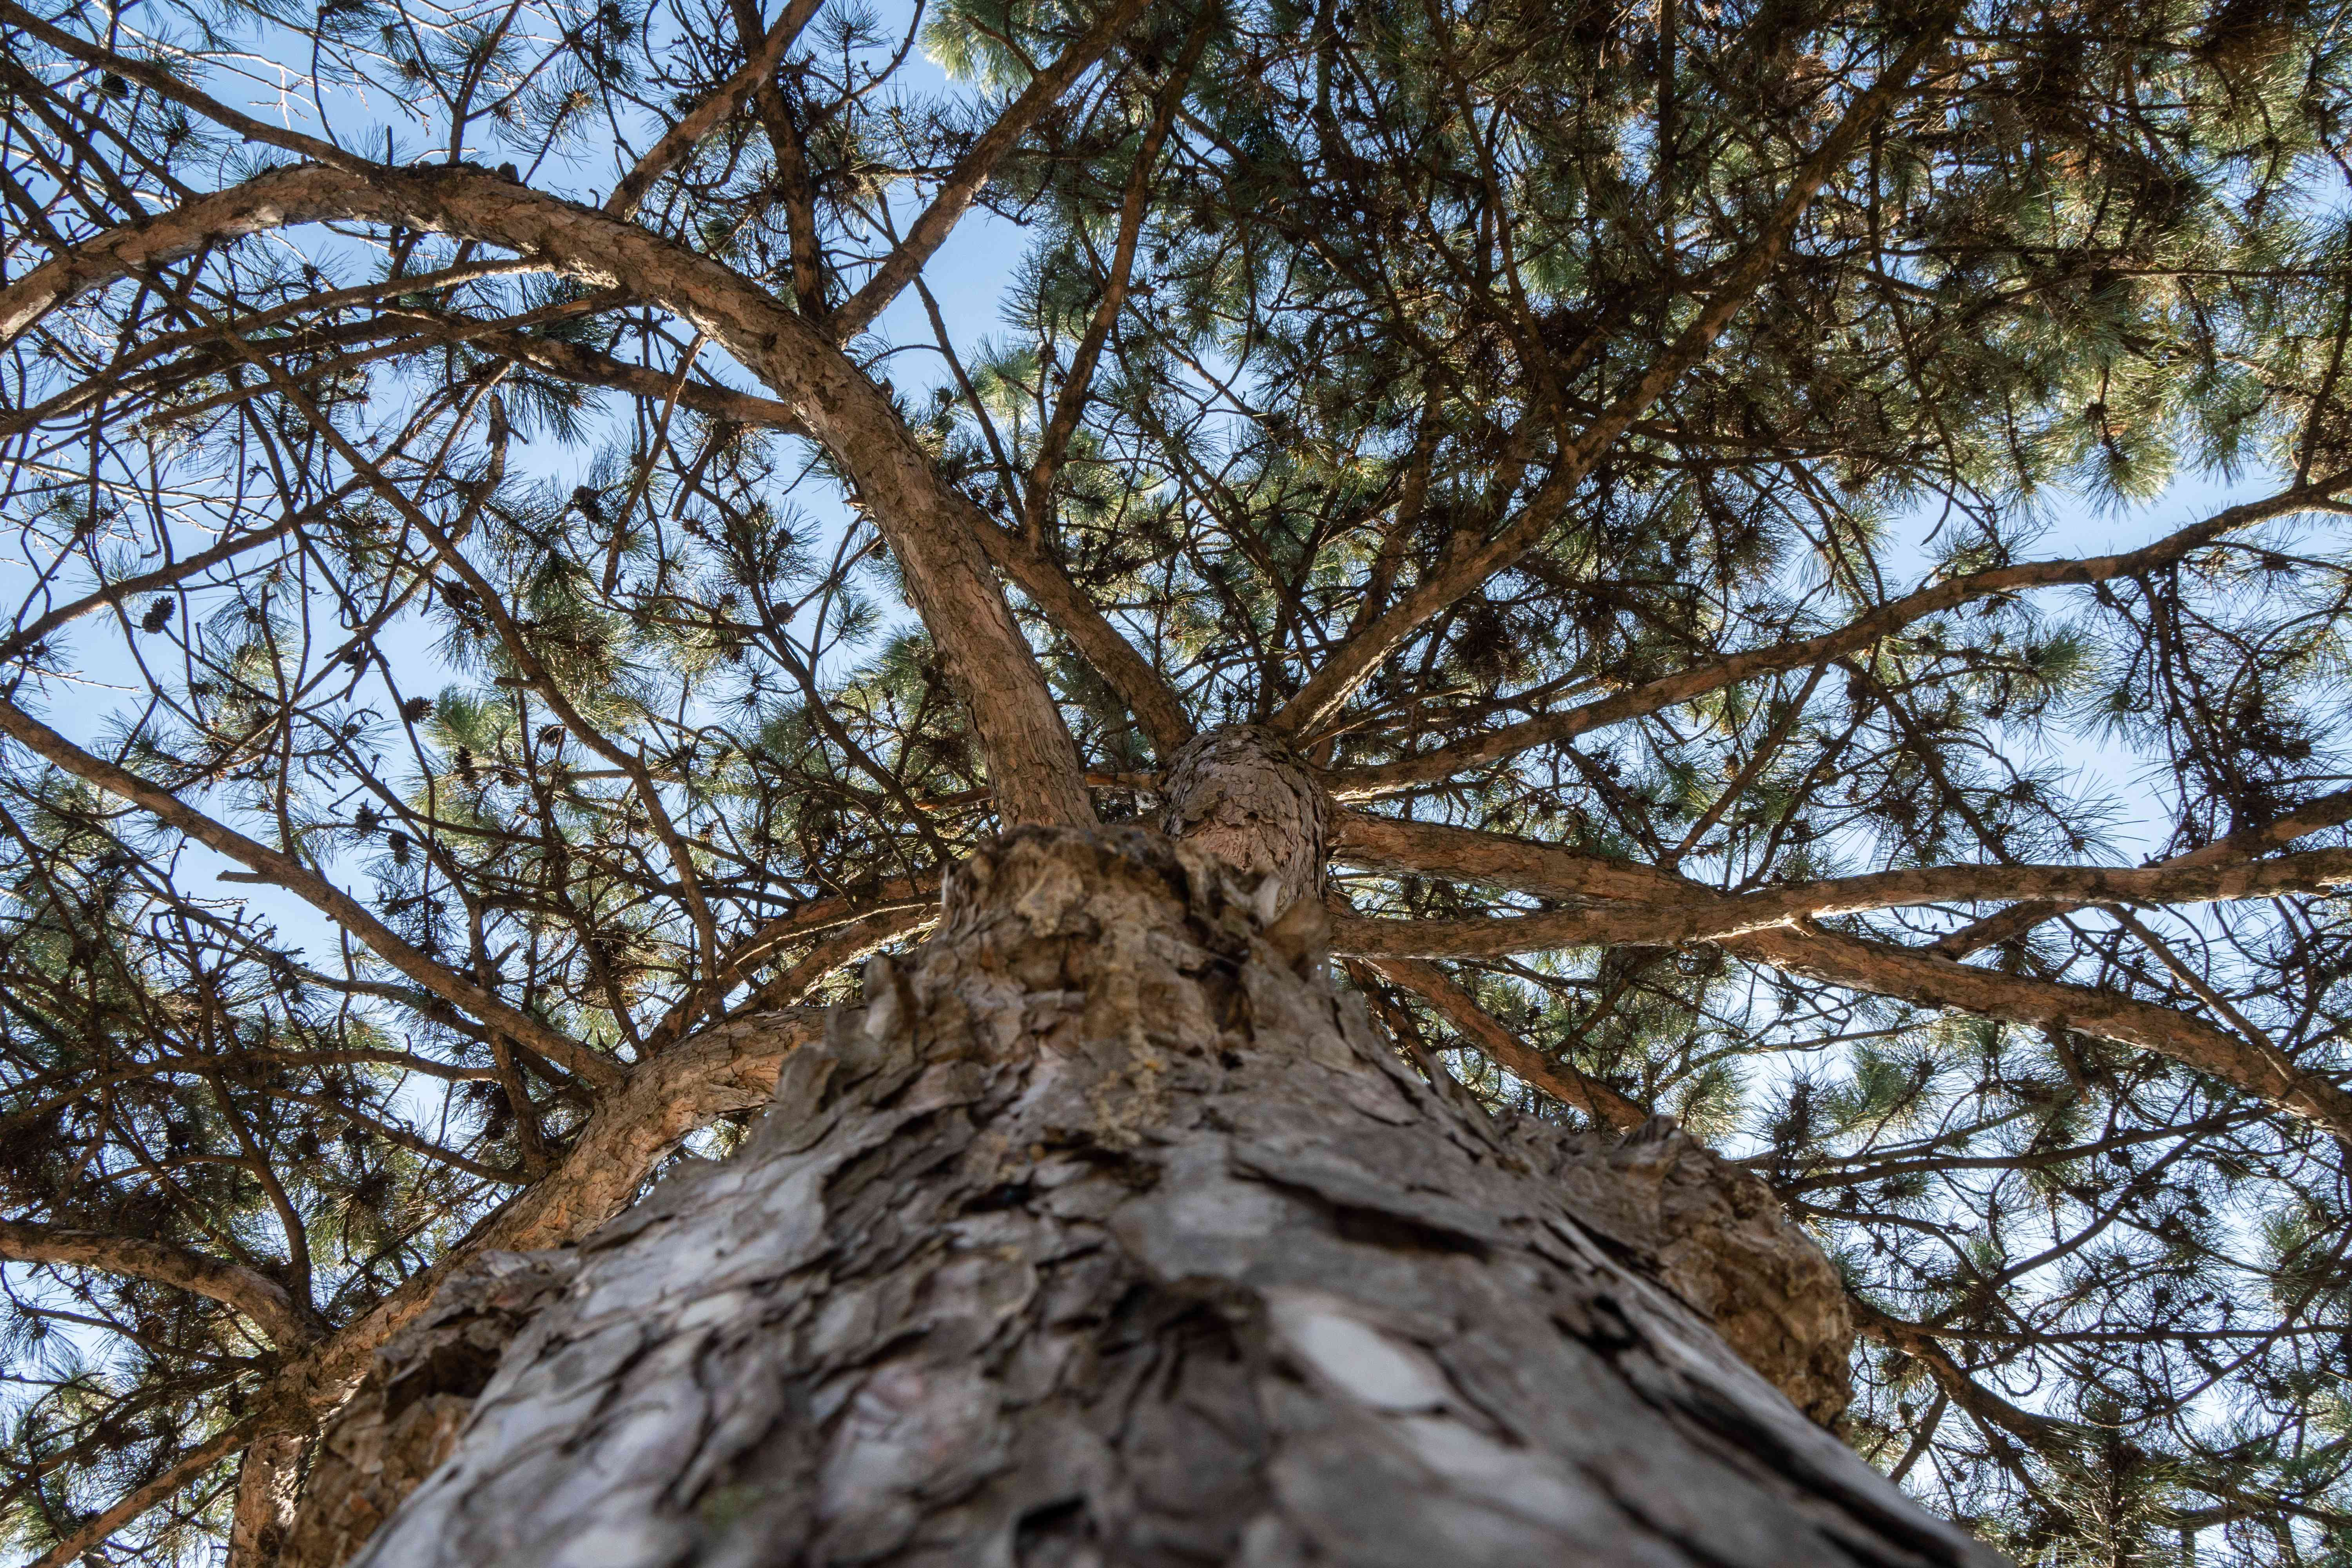 looking up shot into thick pine tree with needles against blue sky